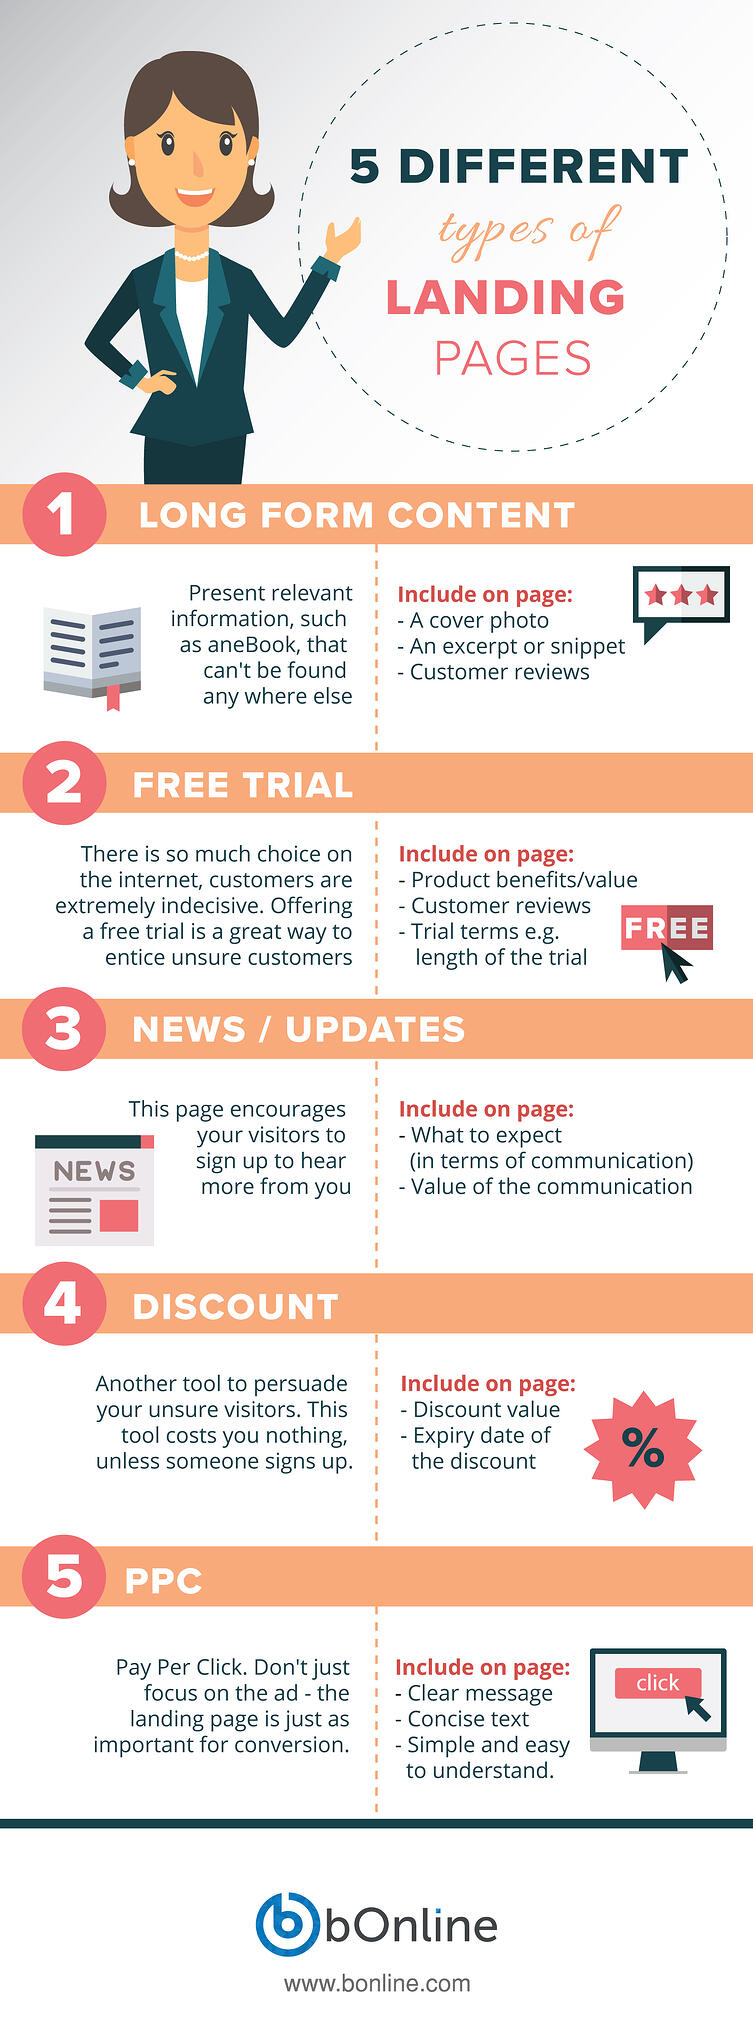 5-different-types-of-landing-pages